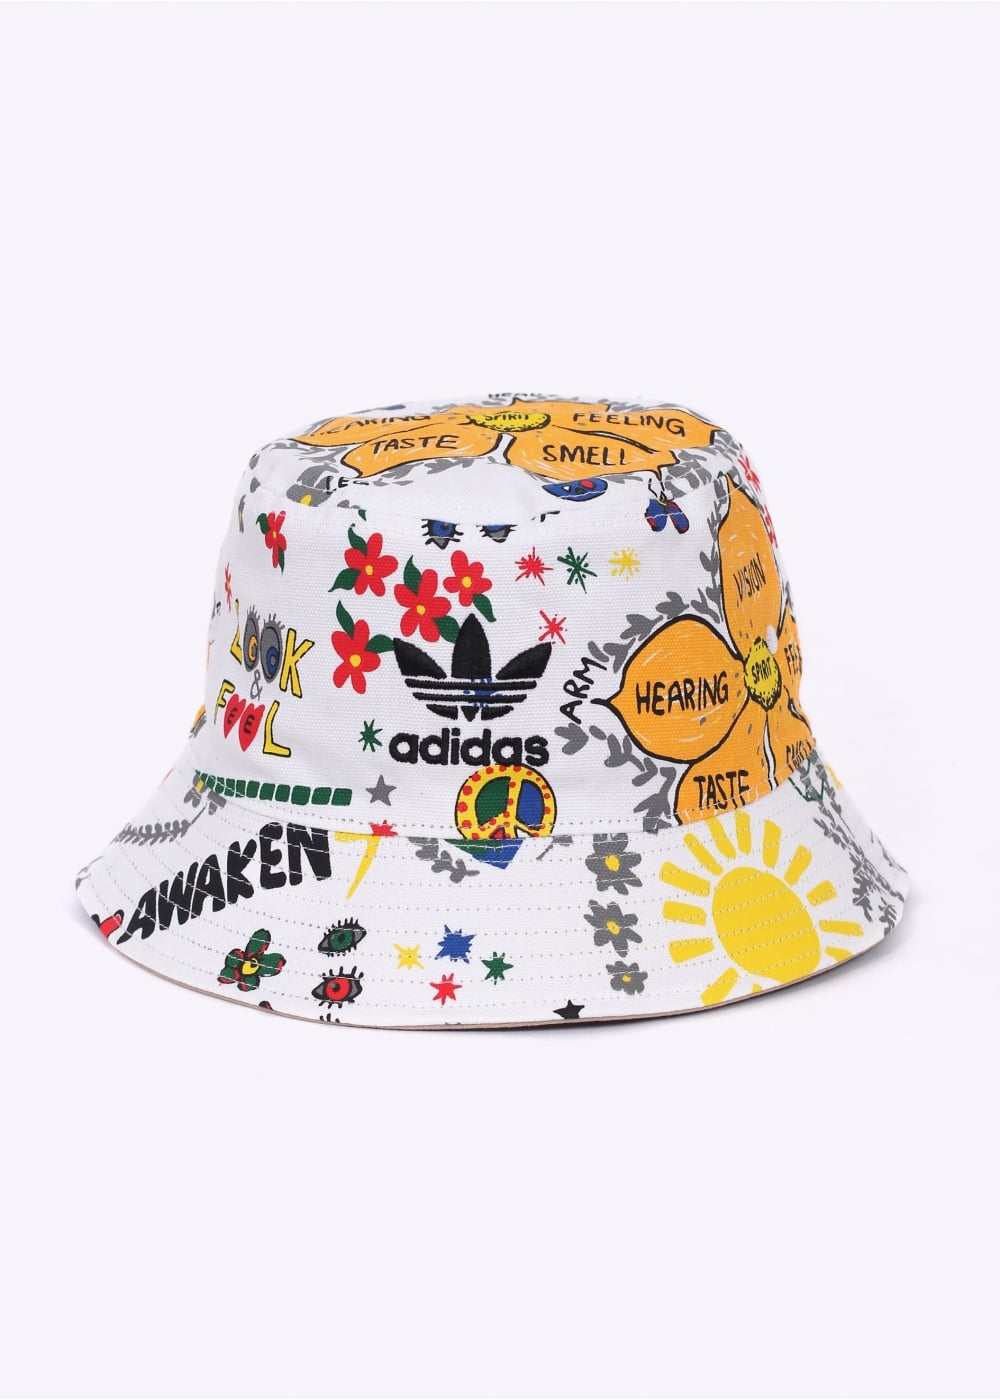 Adidas Originals Accessories x Pharrell Williams Artist Reversible ... 28aaf4244